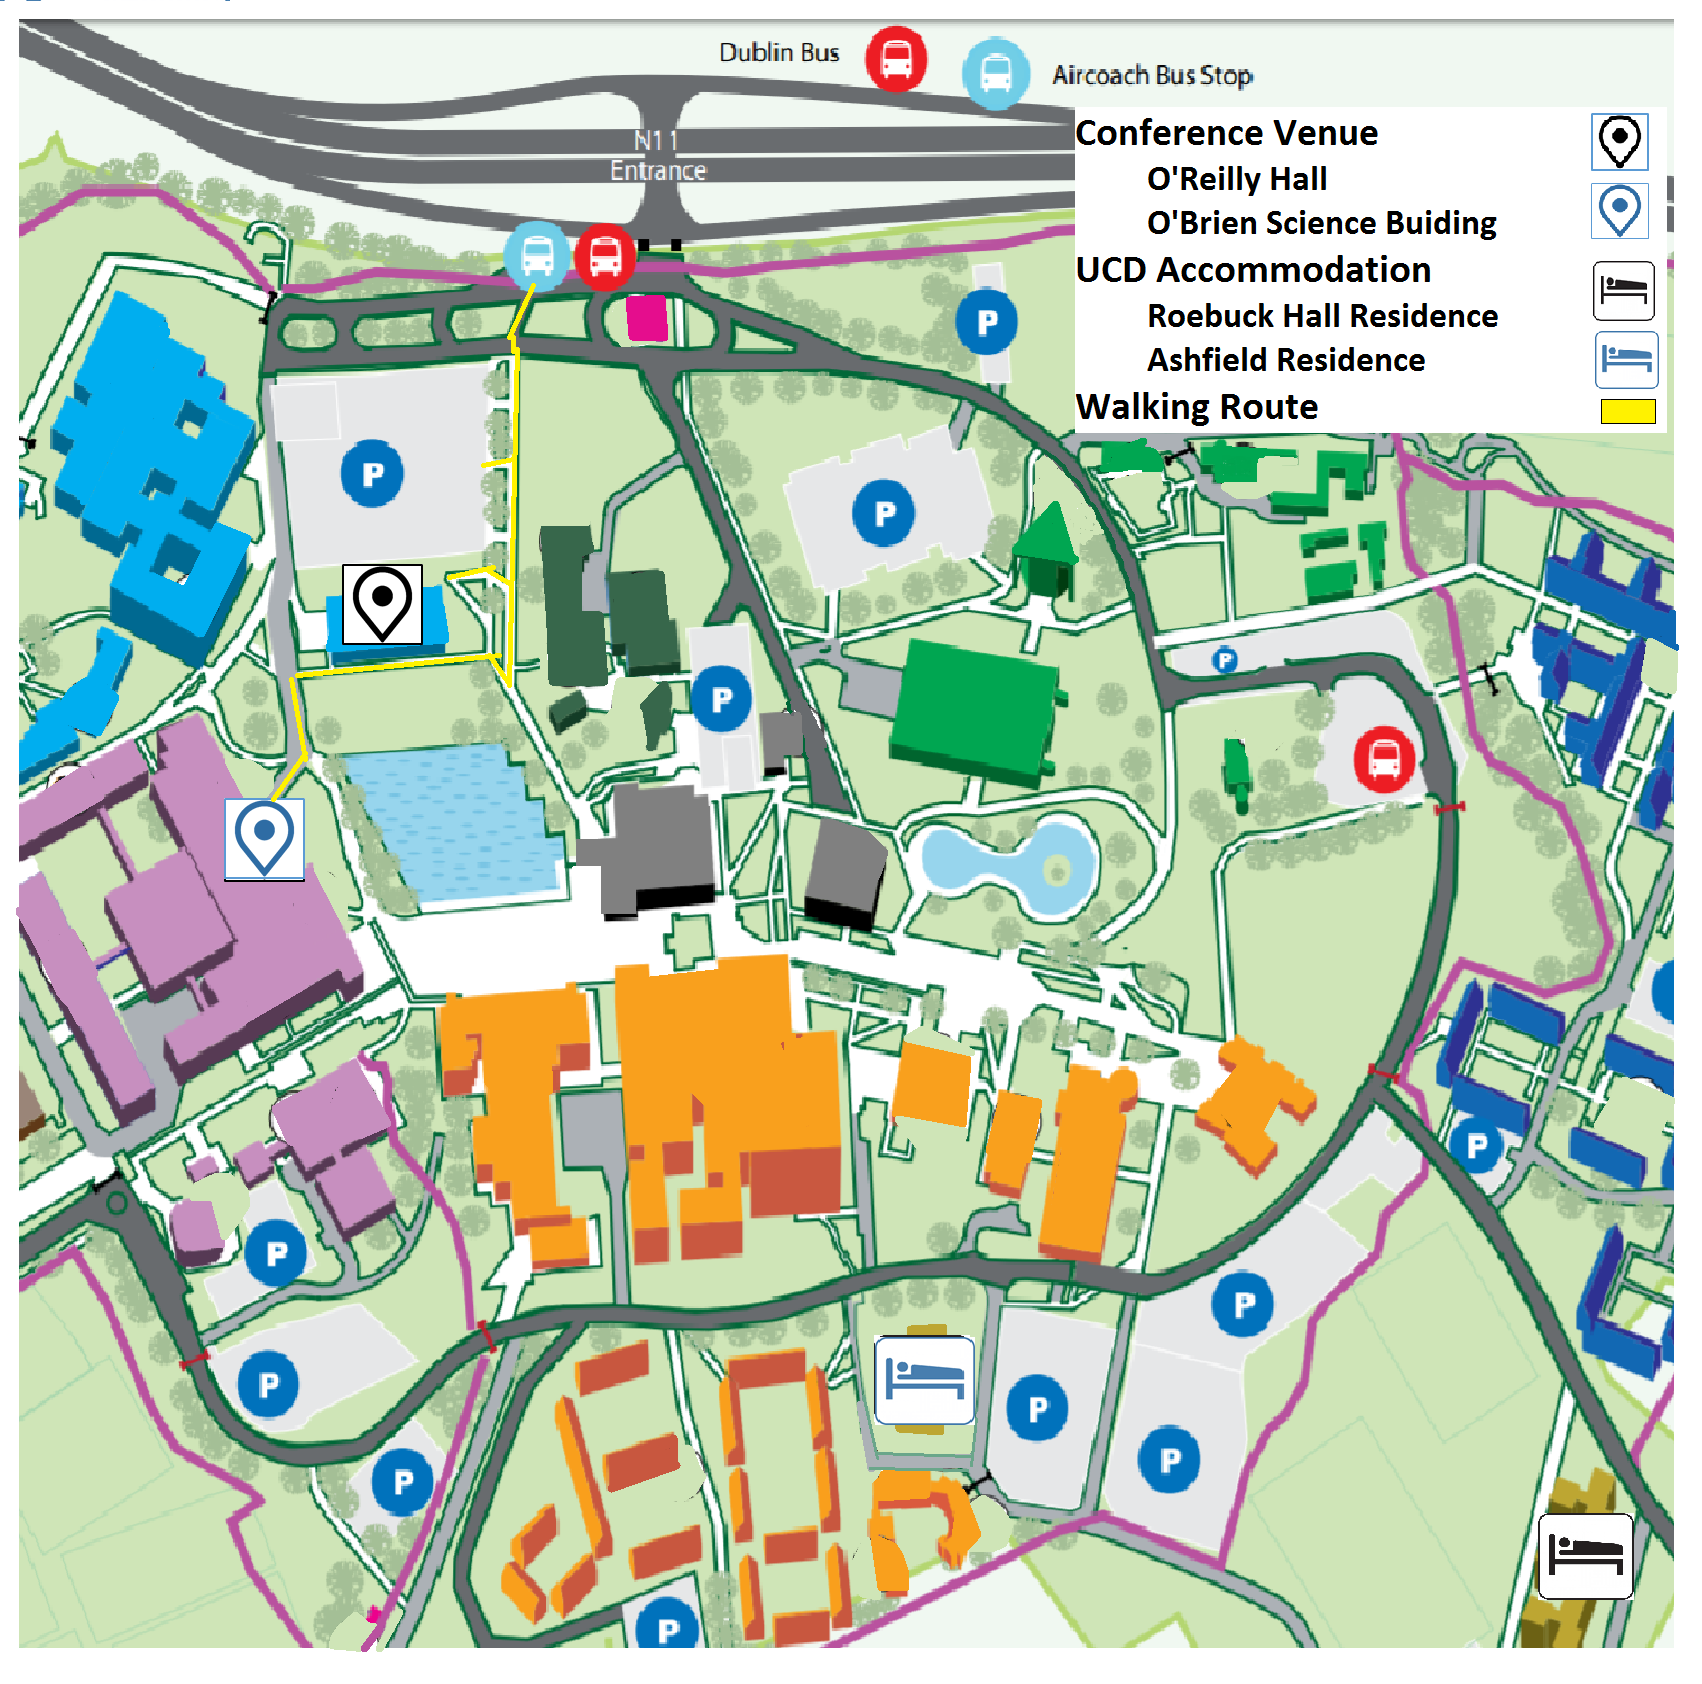 map of ucd campus Isag 2017 map of ucd campus